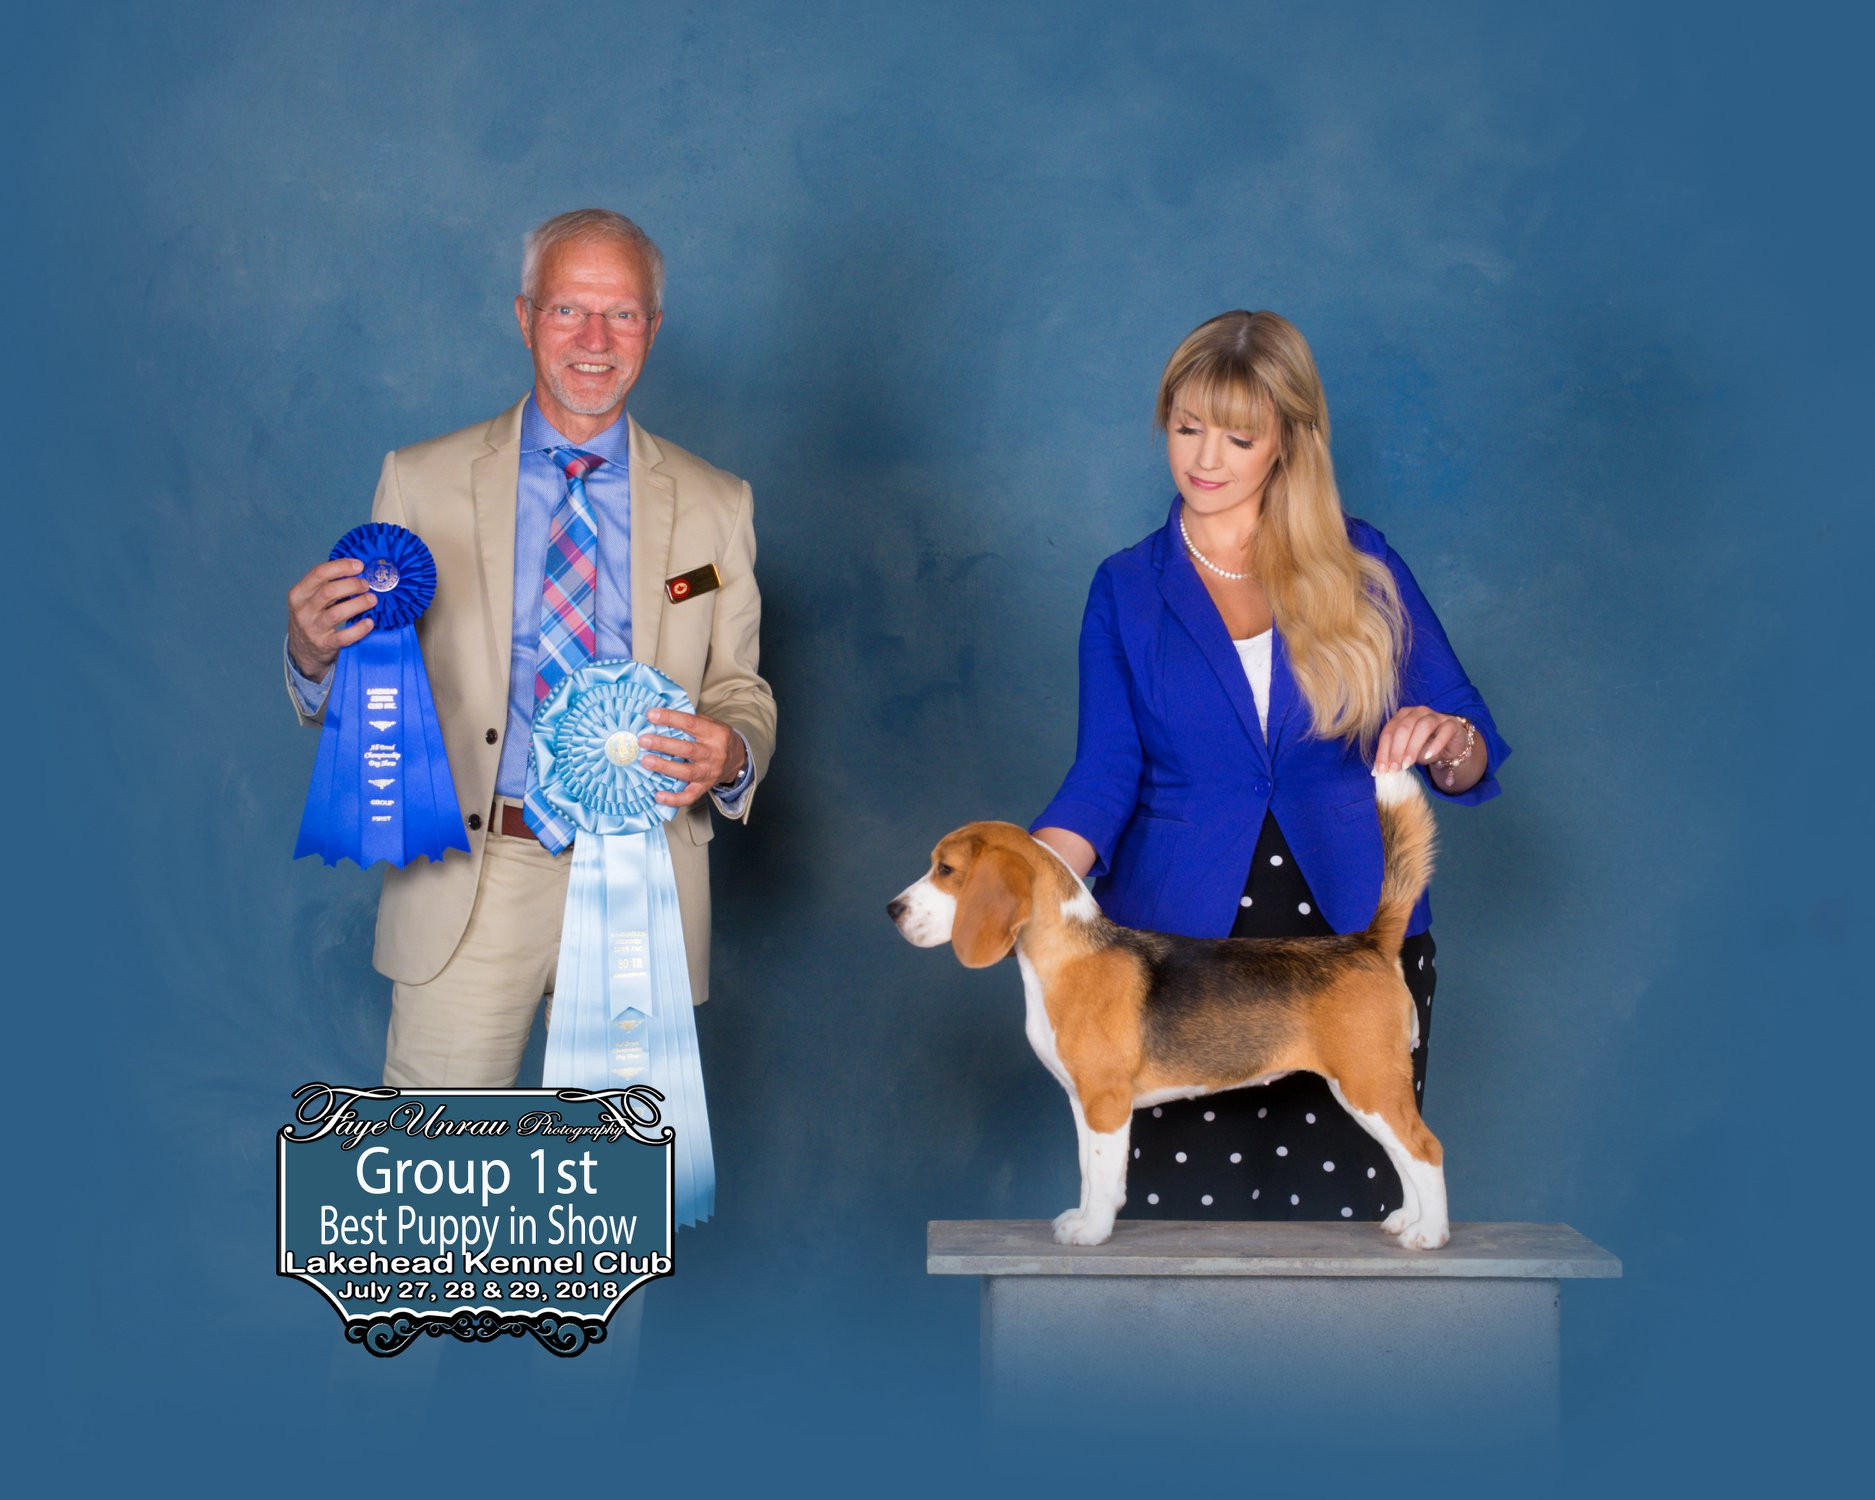 Group 1 & Best Puppy in Show